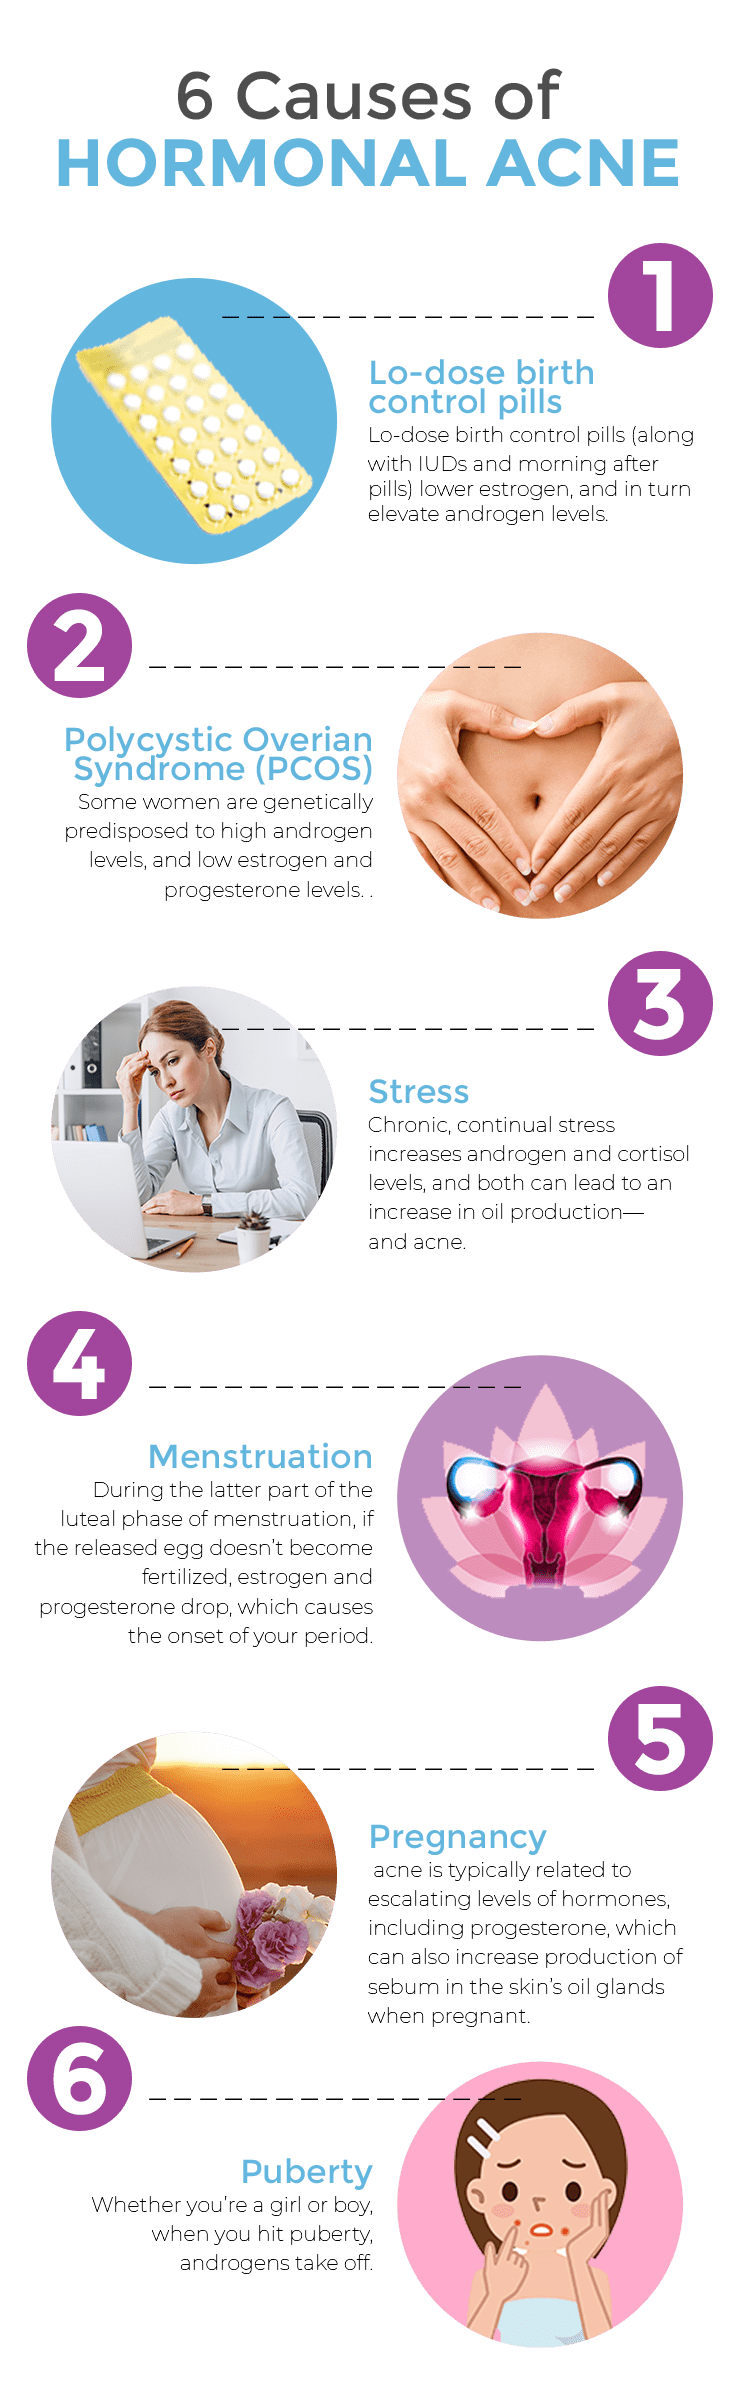 6 Causes of Hormonal Acne Infographic